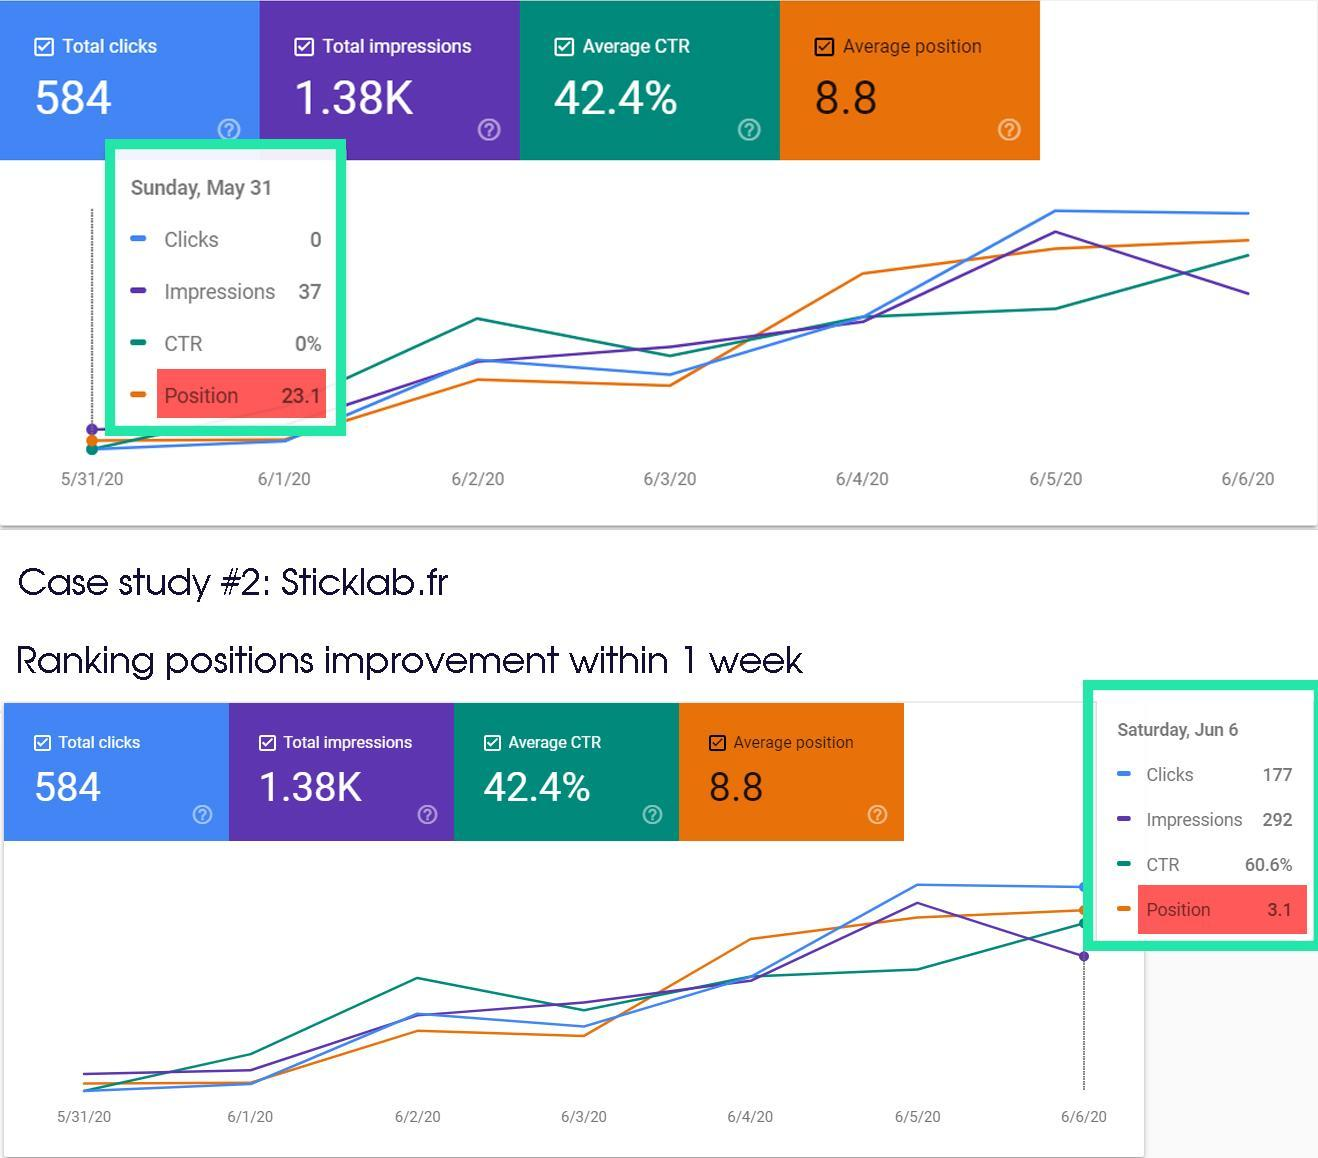 Sticklab case study: increase CTR and SEO rankings in only 1 week by using the SERP traffic bot of SearchSEO